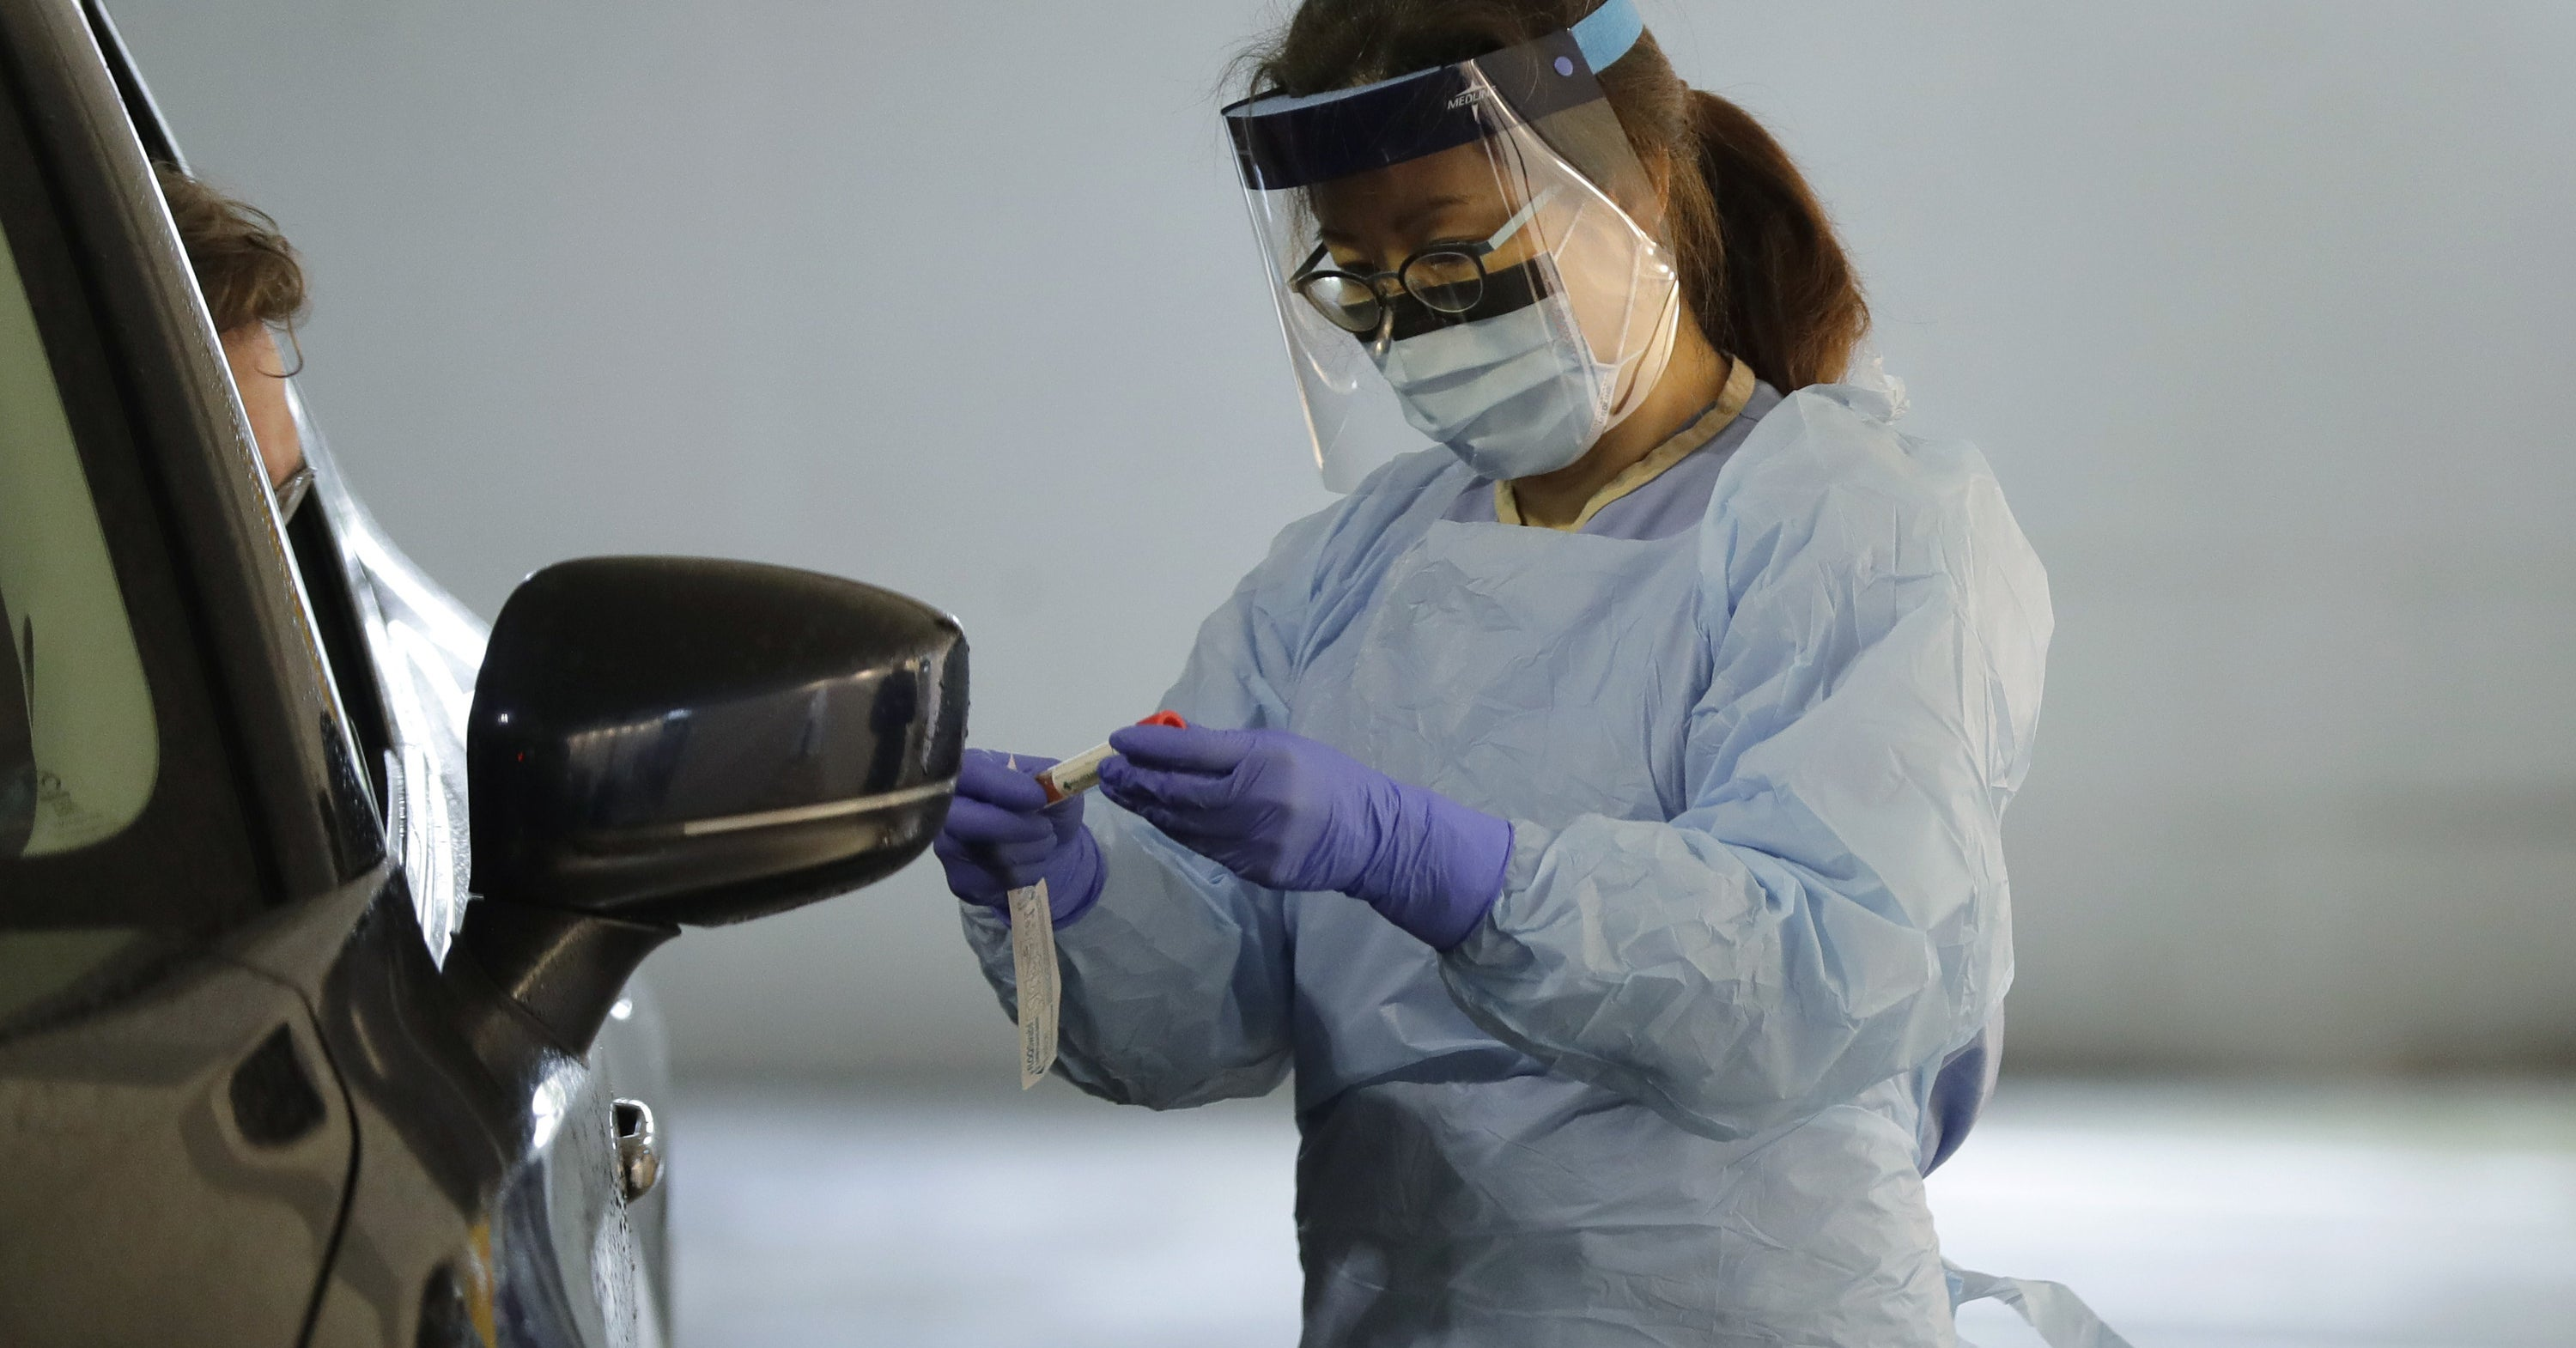 A Health Care Workers Union Found A Supplier With 39 Million Masks For Doctors And Nurses Fighting The Coronavirus